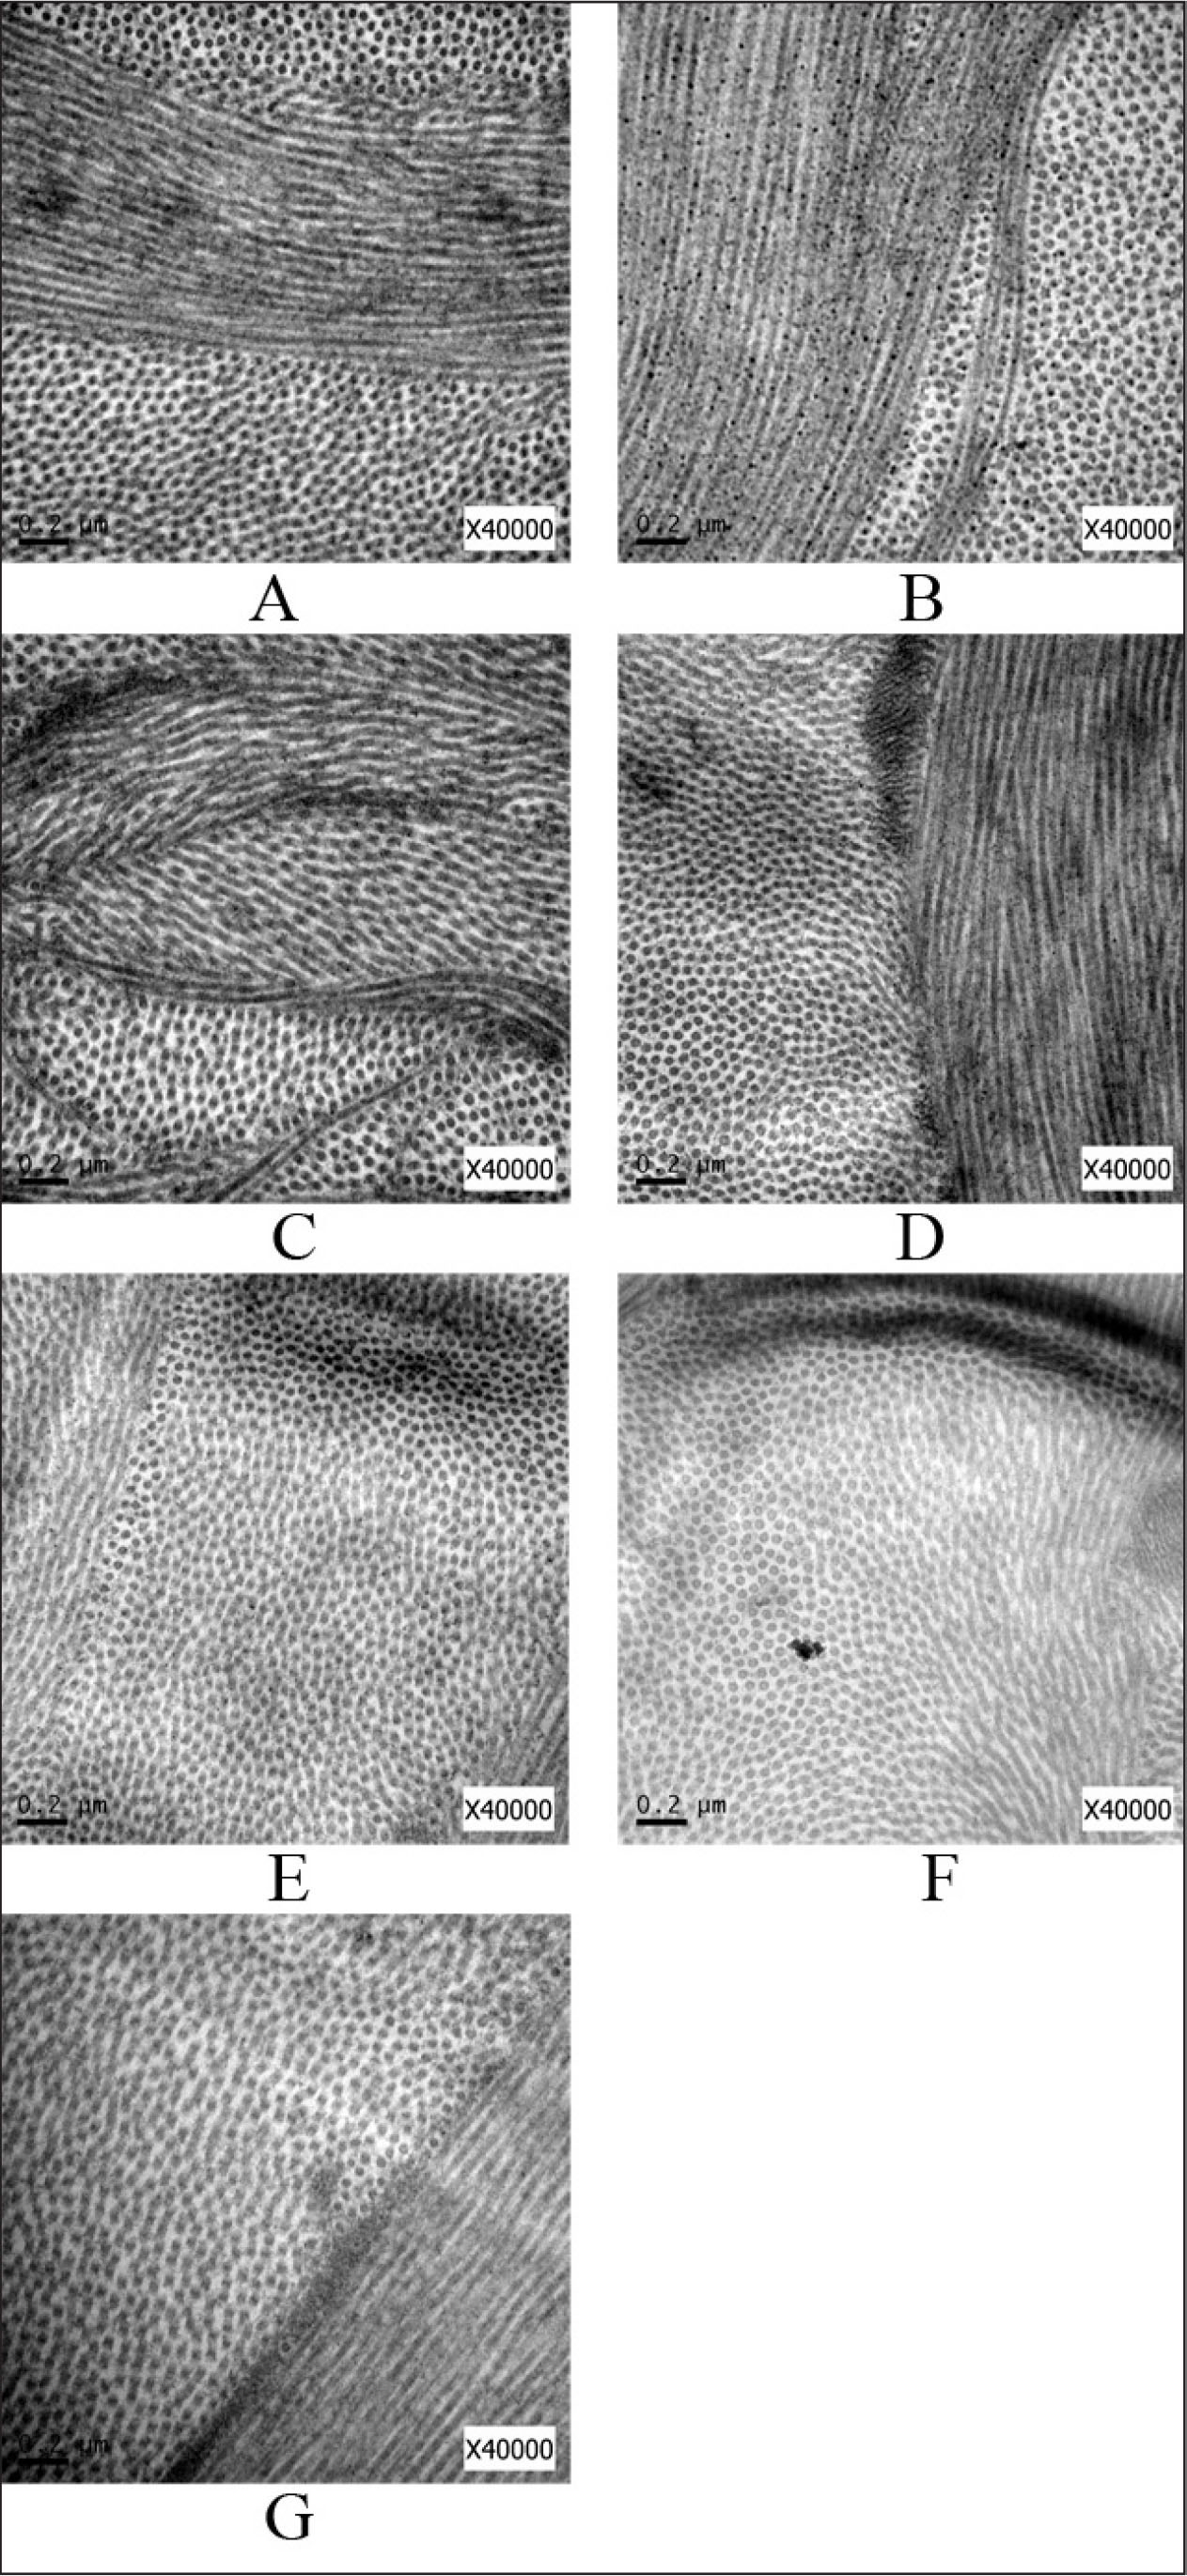 Images of collagen fibrils in the anterior stroma obtained using transmission electron microscopy with 40,000 magnification. (A) 3mW/30min group, (B) 9mW/10min group, (C) 18mW/5min group, (D) 30mW/3min group, (E) 45mW/2min group, (F) 90mW/1min group, (G) no irradiation (NUVA) group.